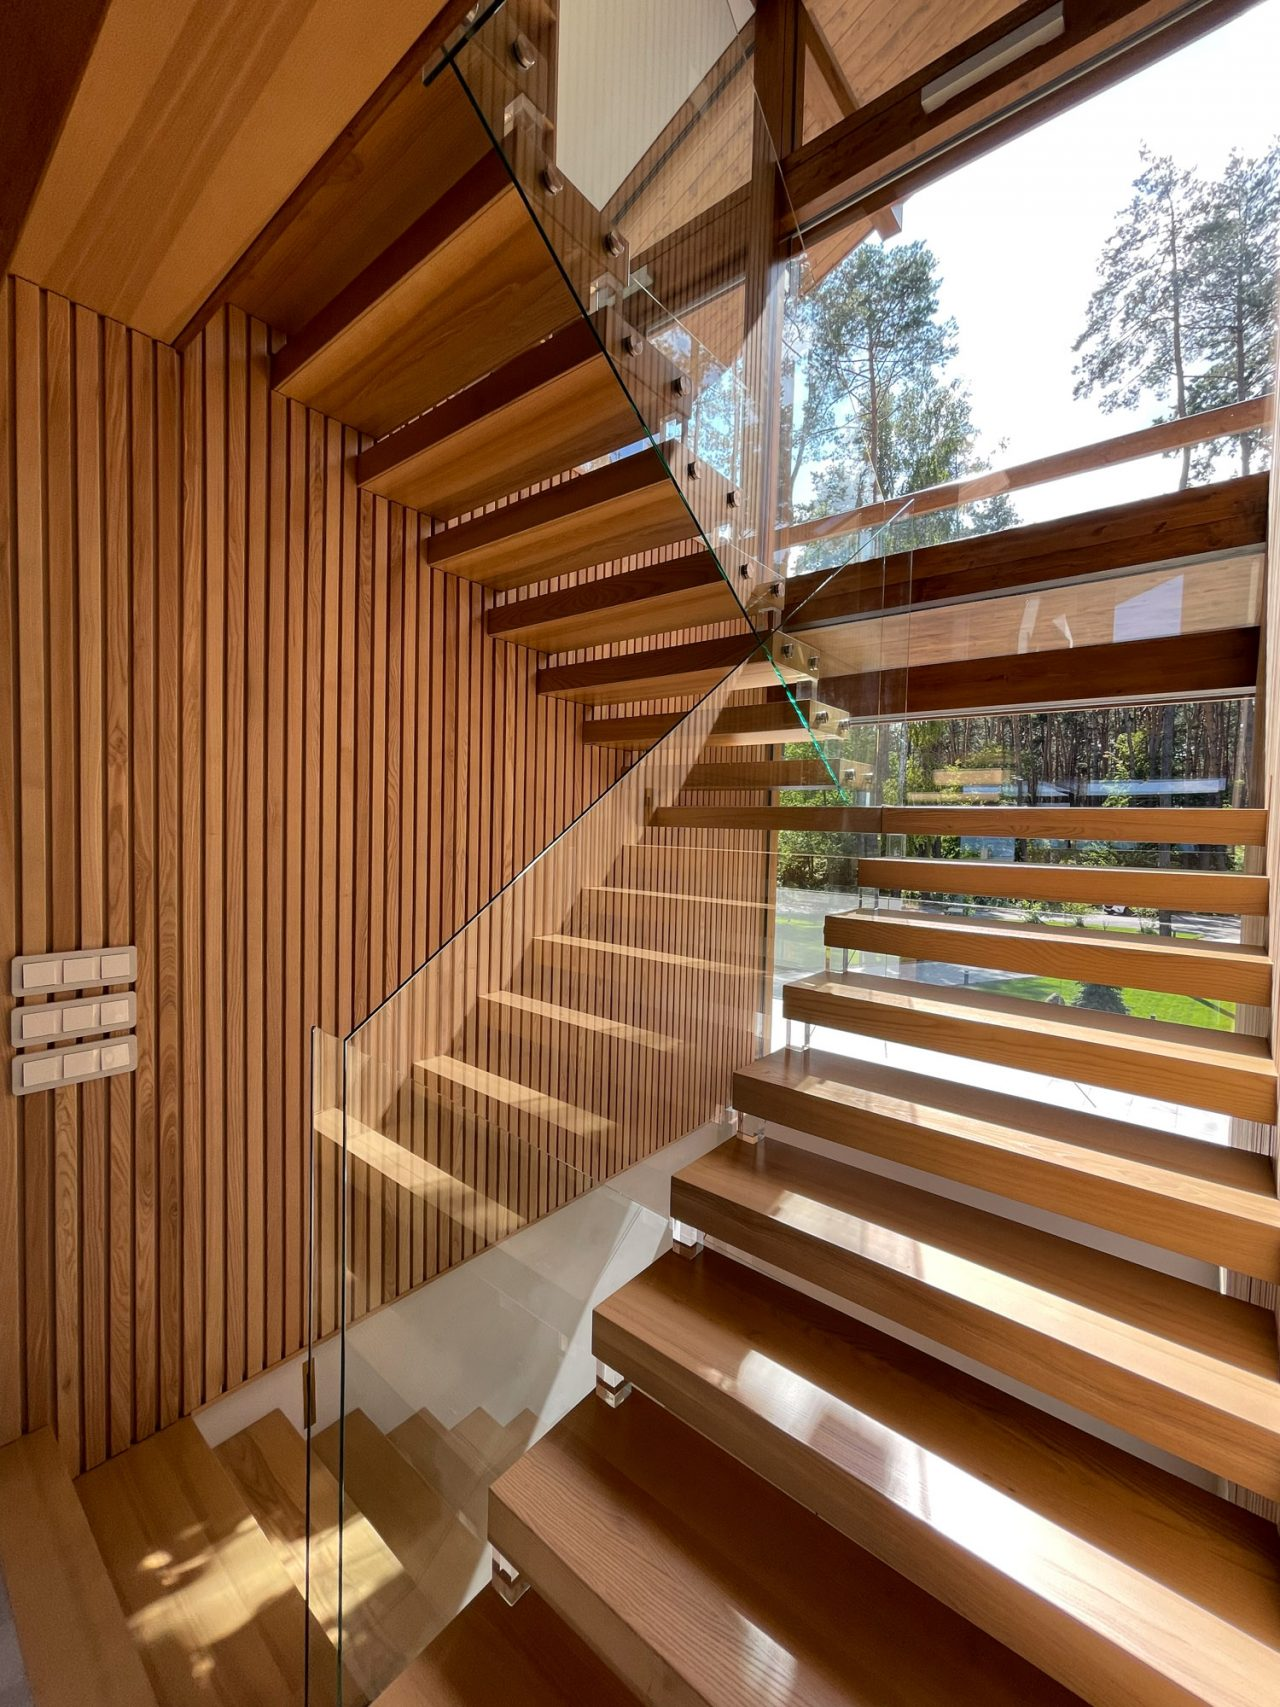 Hlass_house_KAGER - Hurii_10